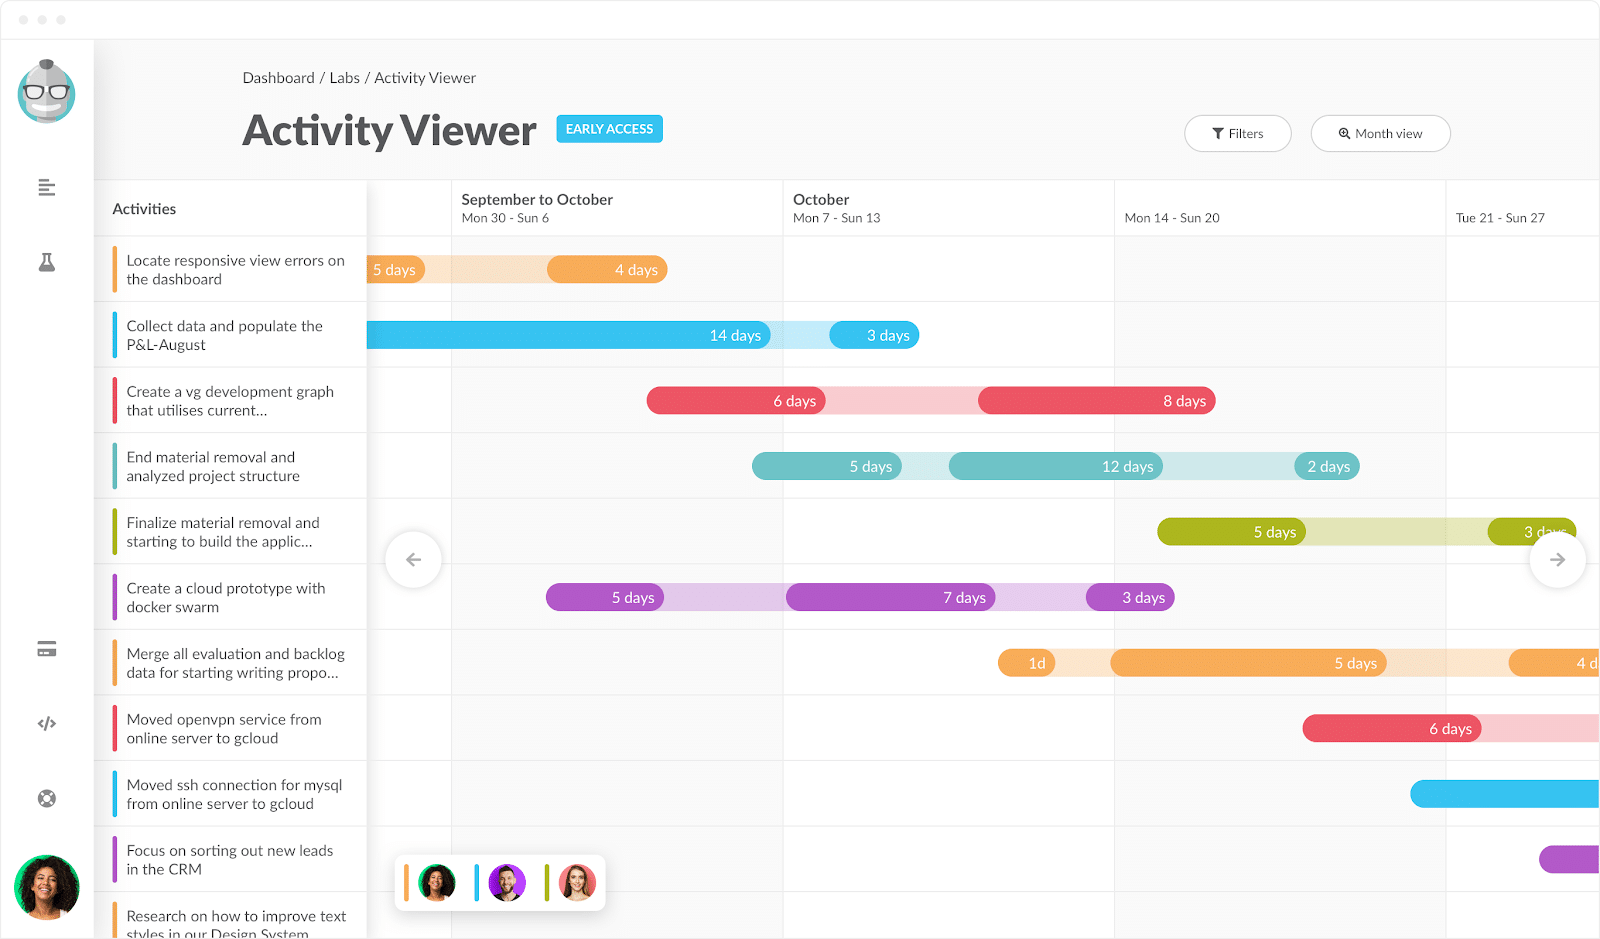 Activity Viewer Month view 2